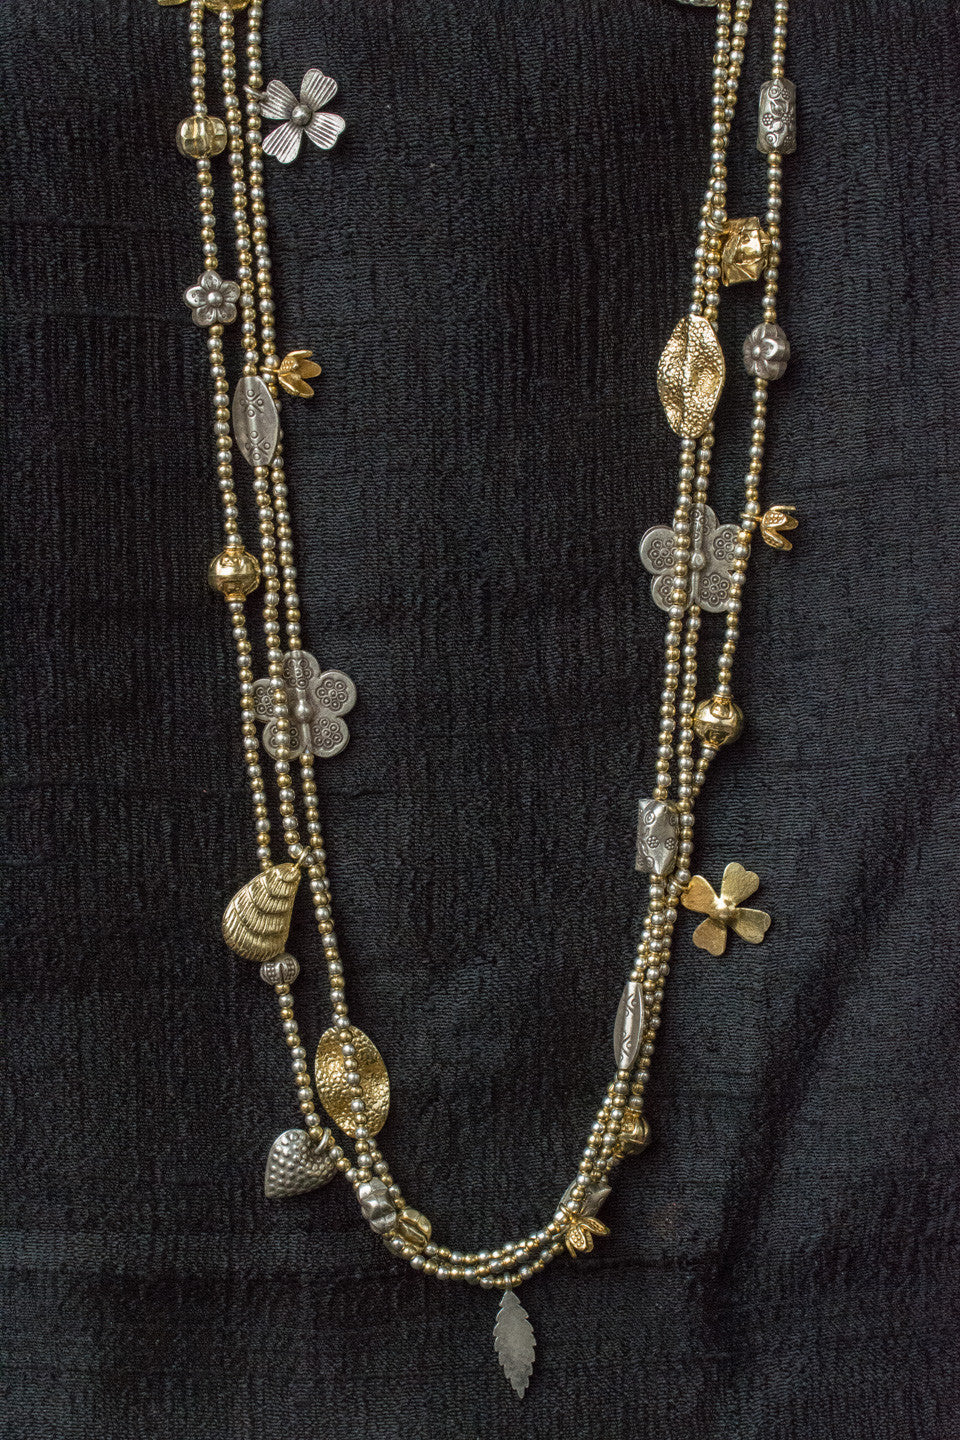 20a518-silver-gold-plated-amrapali-beaded-necklace-two-tone-embossed-charms